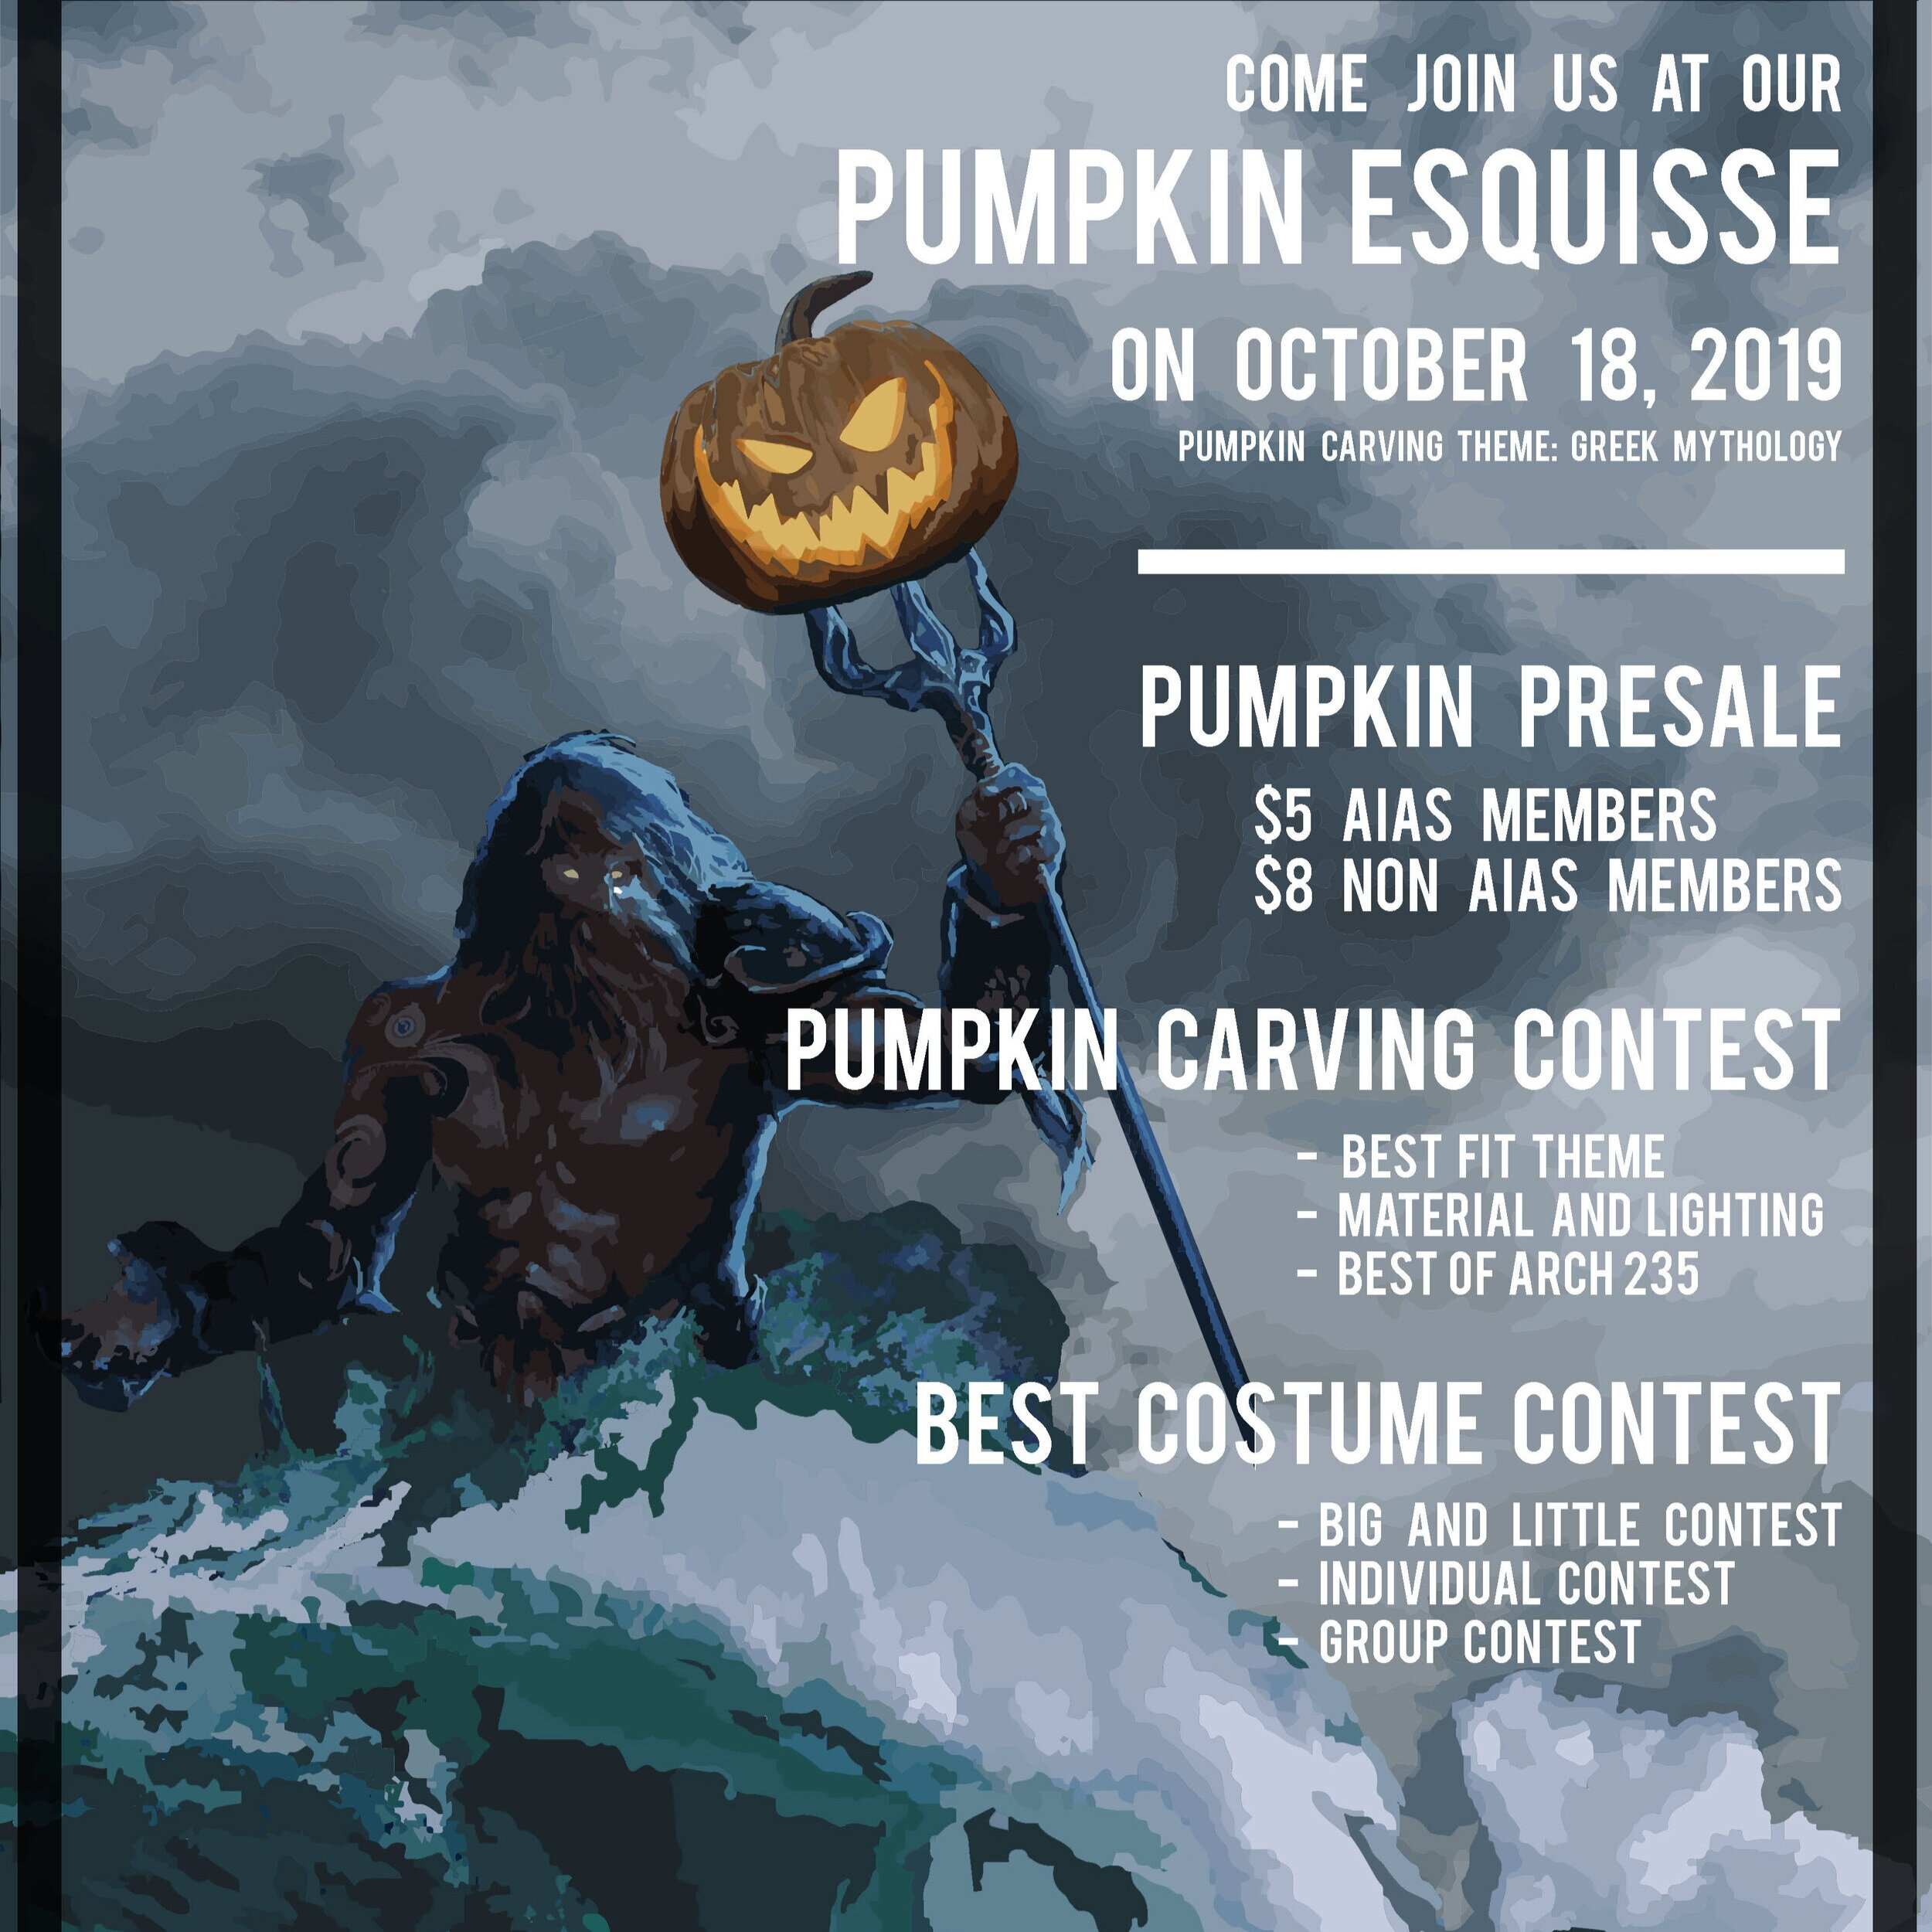 19-1018_Pumpkin+Esquisse+Flyer.jpg